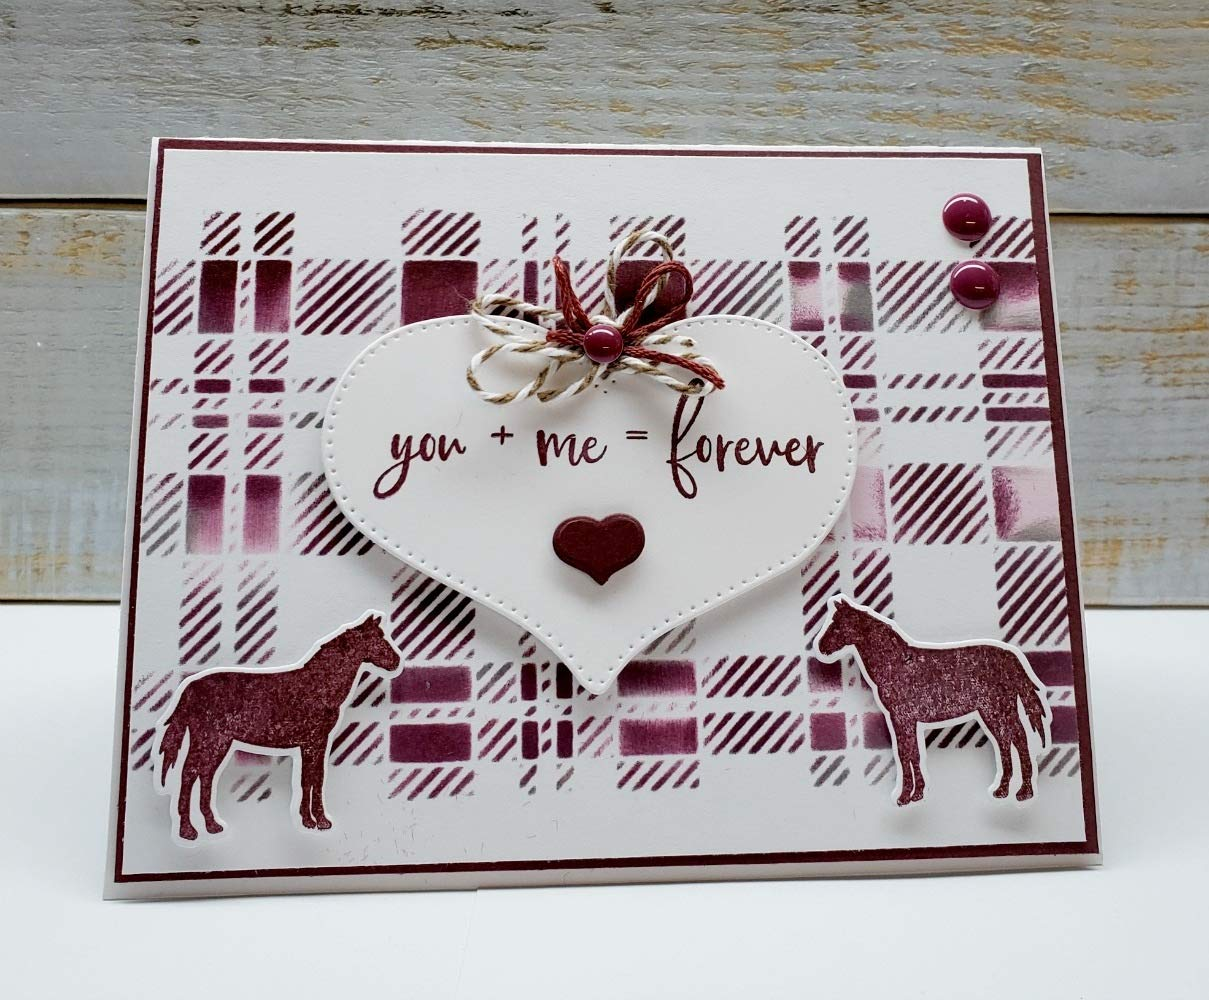 Stamp Simply Clear Stamps Scripture Sentiments Farmhouse Words of Encouragement Christian Religious (4-Pack) 4x6 Inch Sheets - 35 Pieces by Stamp Simply (Image #9)